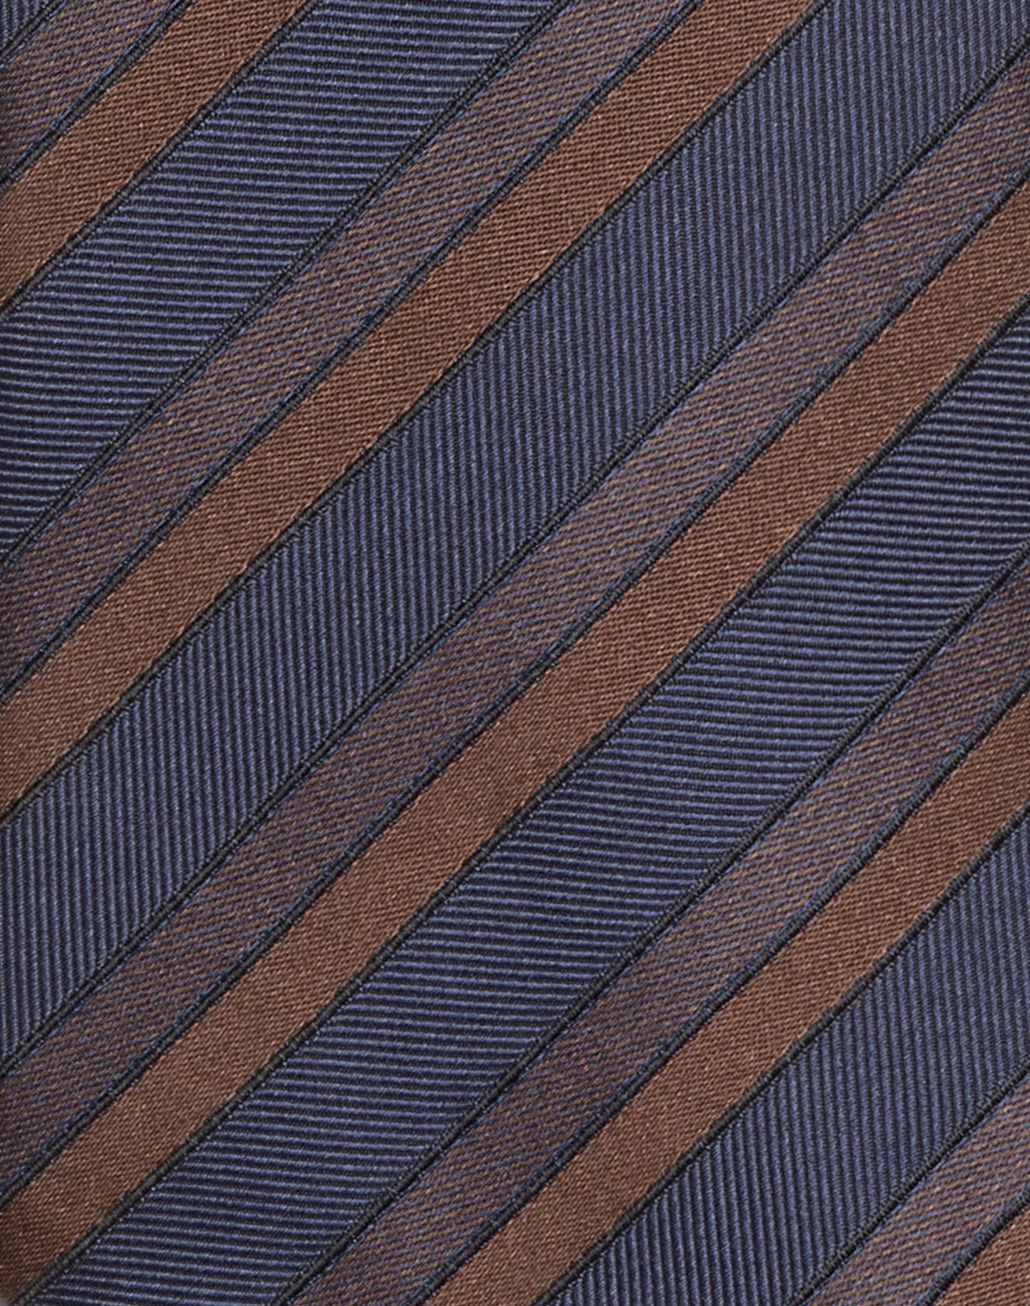 BRIONI Navy Blue and Rust Regimental Tie Tie & Pocket Square U d